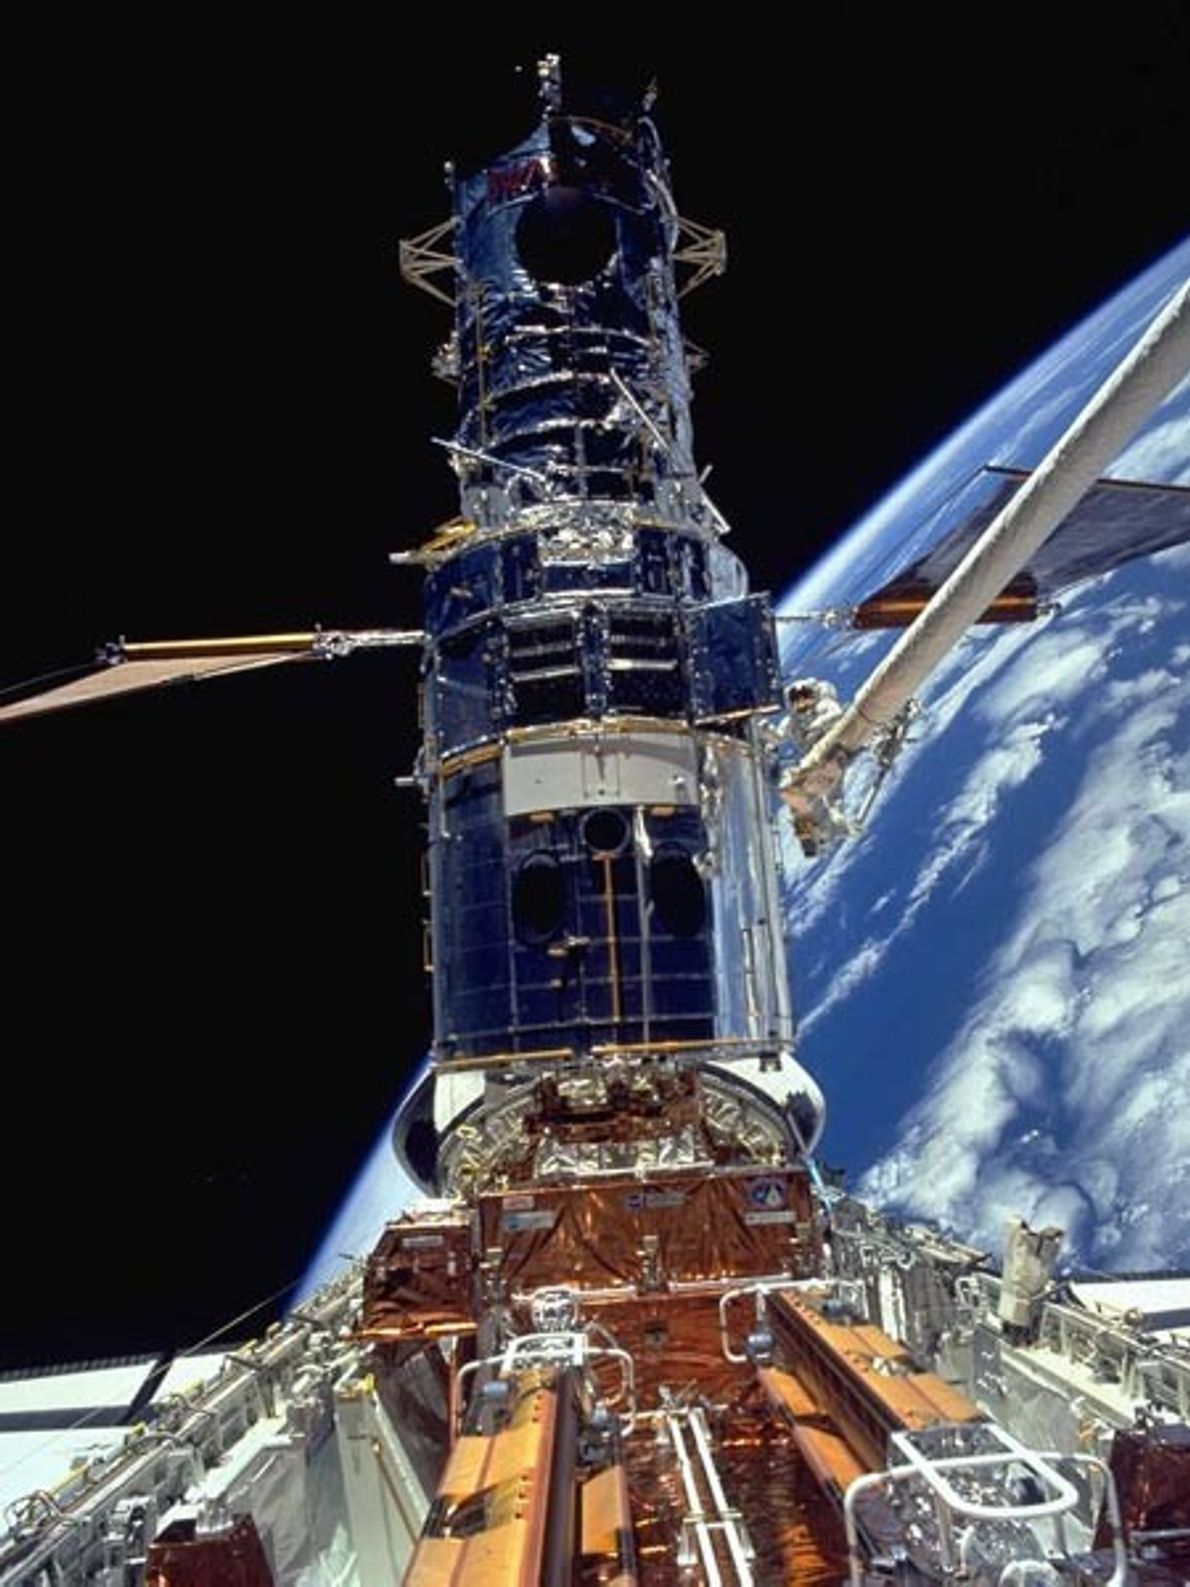 At 43.5 feet (13.2 meters) tall, the Hubble Space Telescope towers over space shuttle Endeavour's payload ...